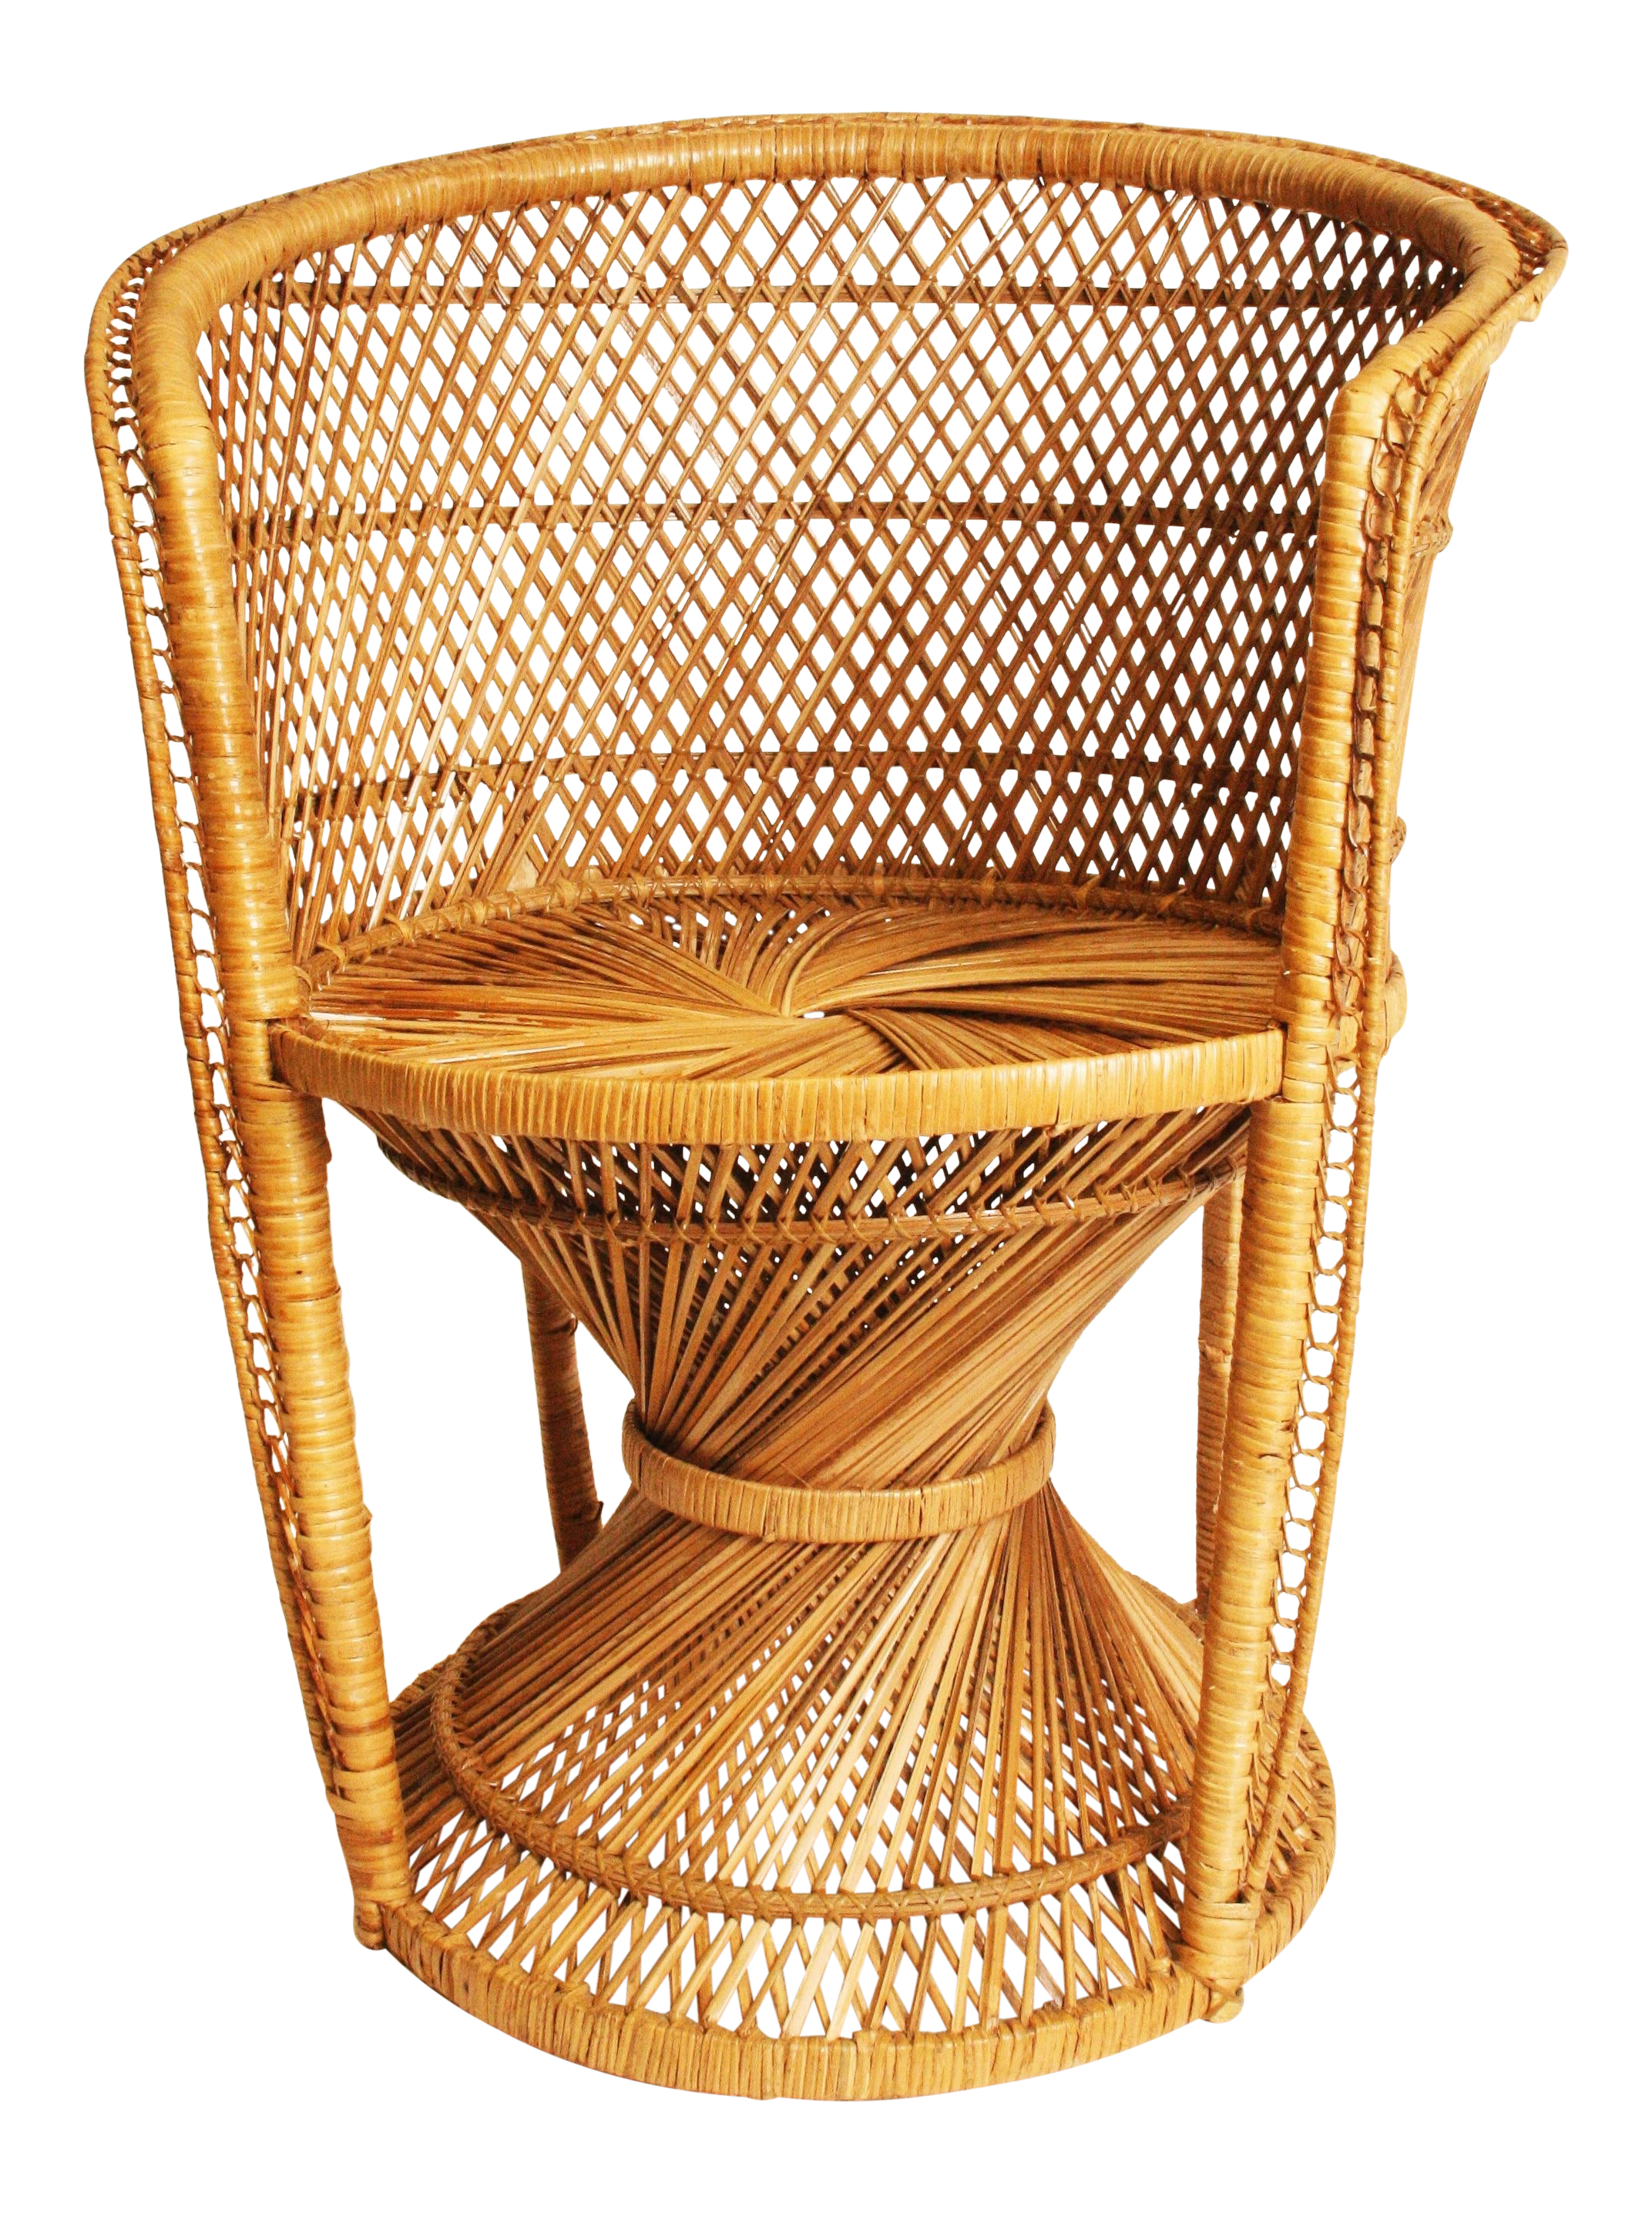 Vintage Wicker Bohemian Peacock Chair Chairish